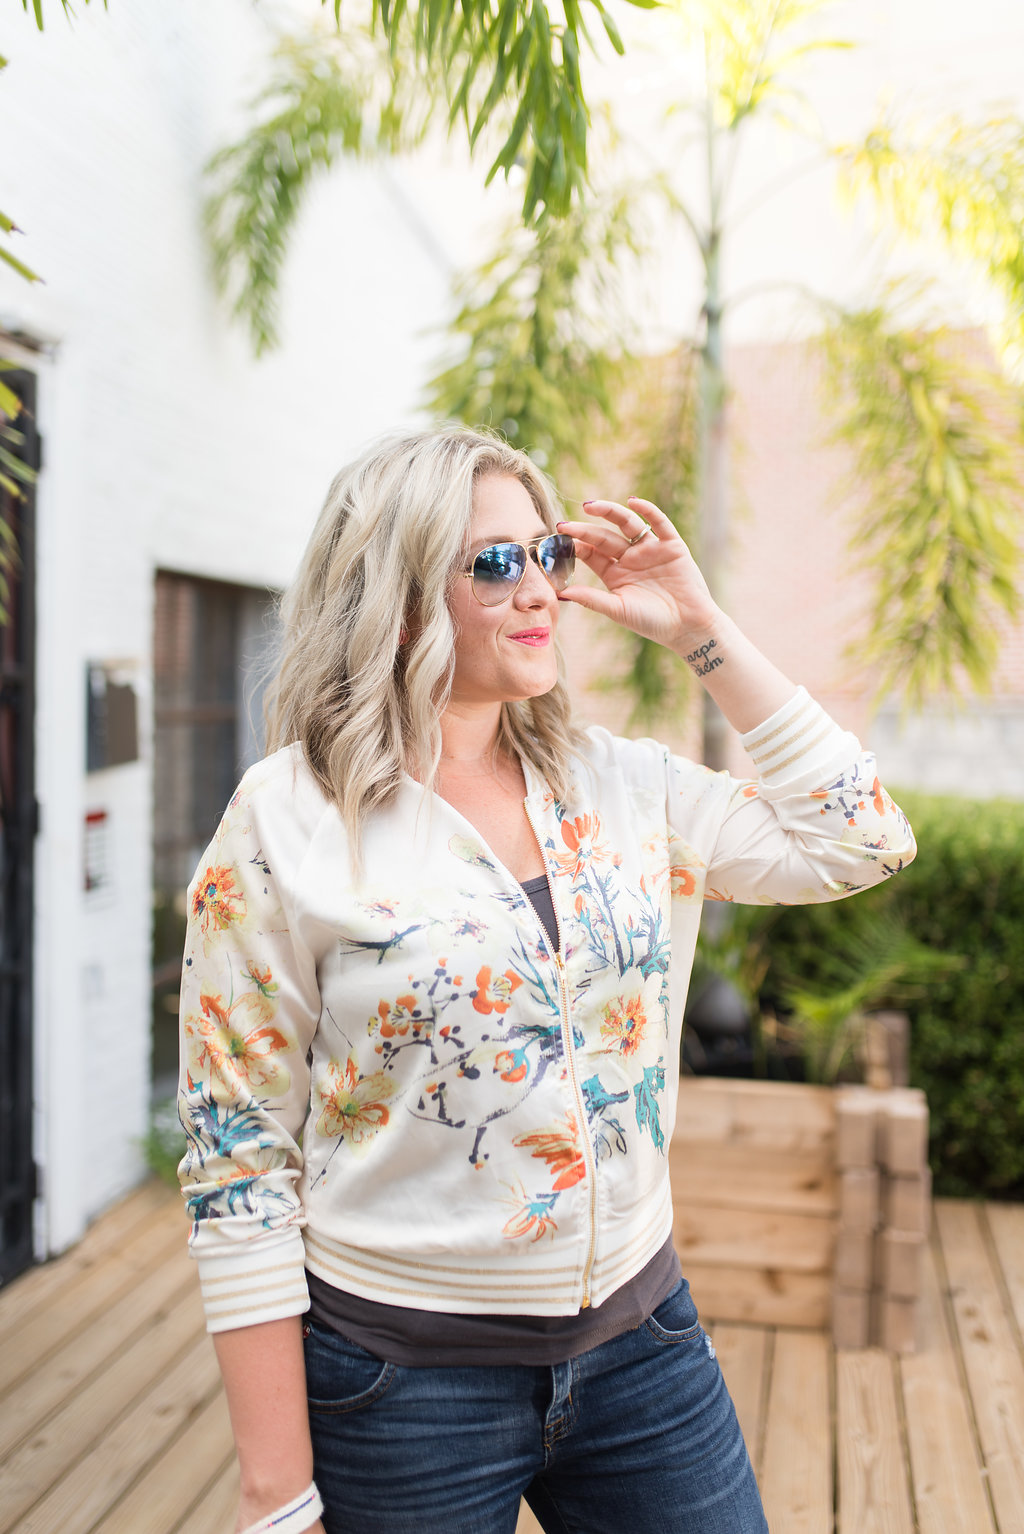 A Fun Summer Jacket & Quirky Boutique